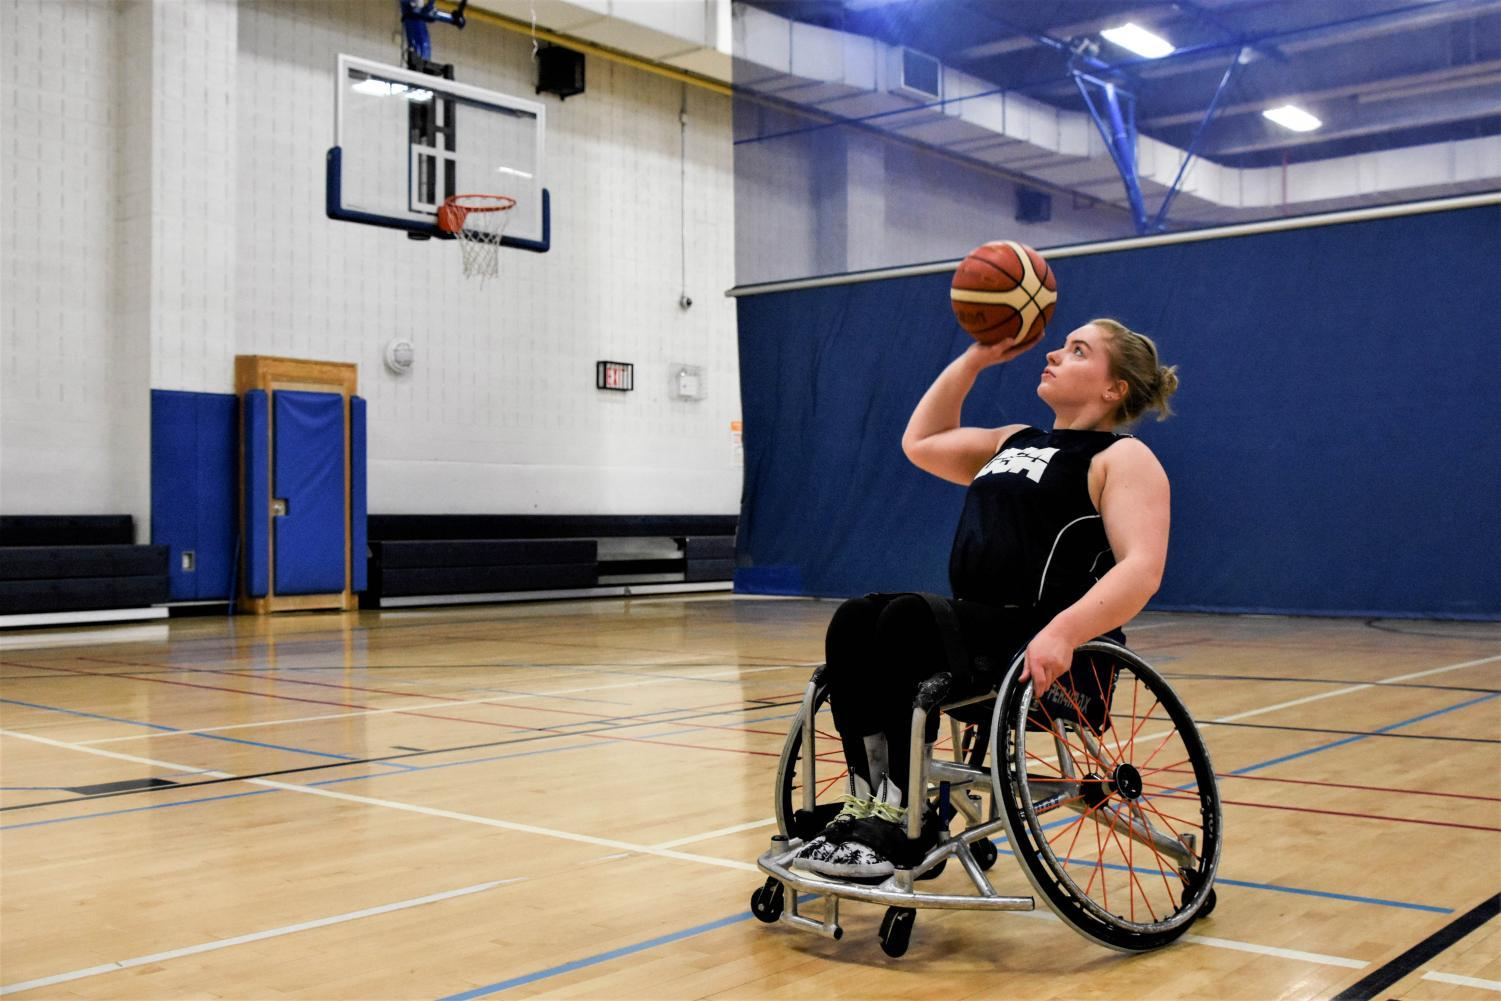 Josie Aslakson practices for the 2018 World Championships for wheelchair basketball.